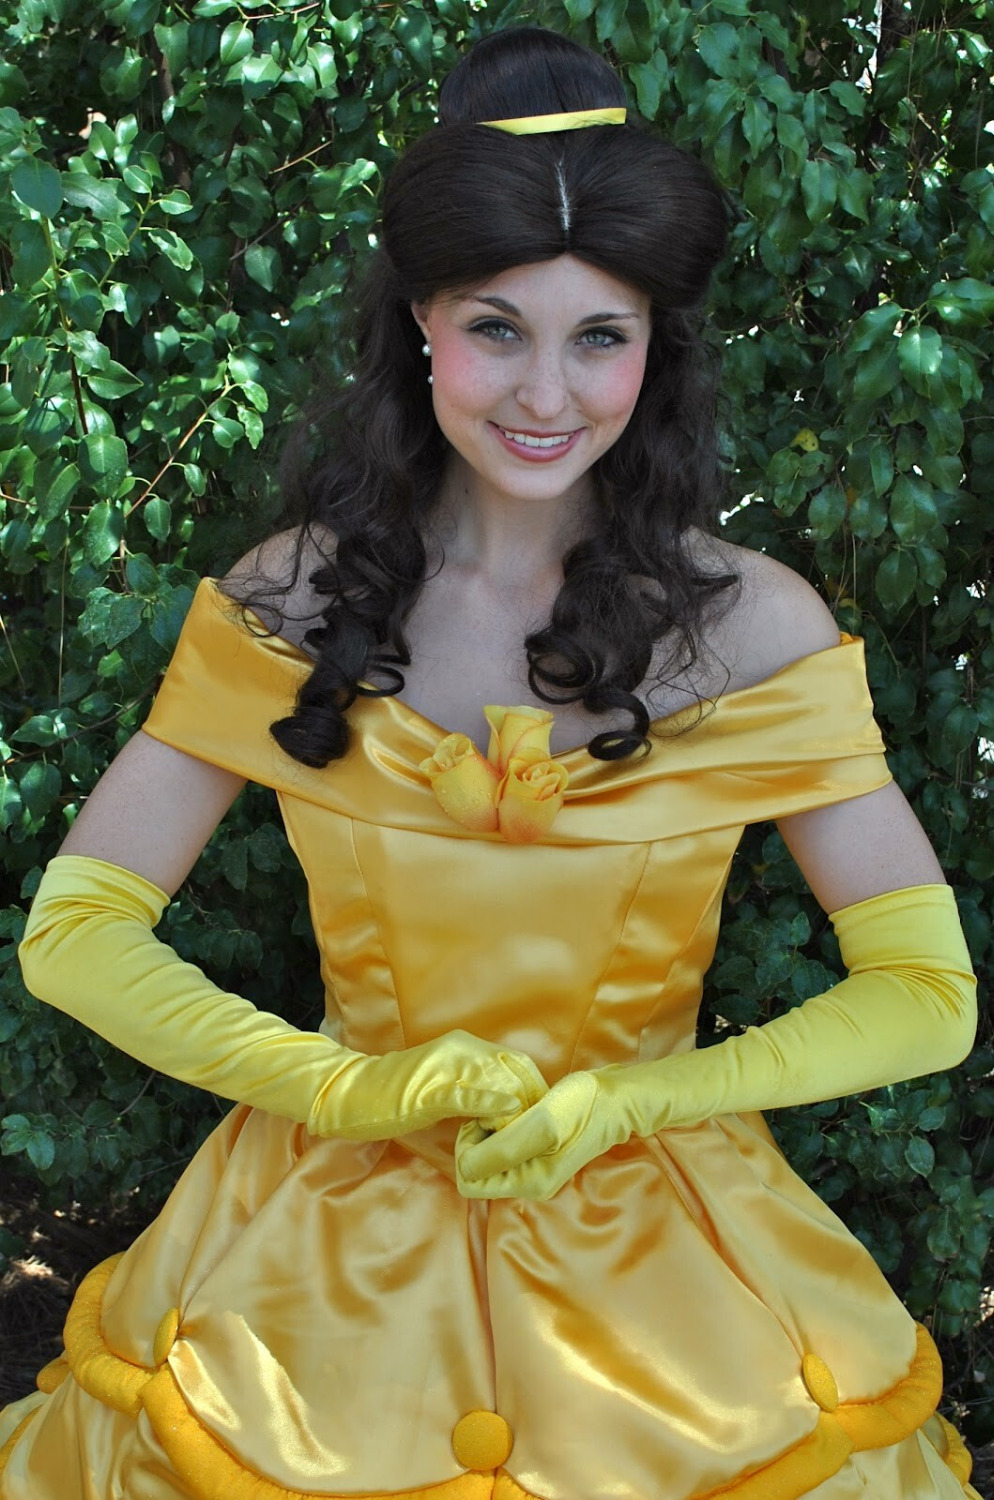 bella-princess-dress-for-adult-size-women-cosplay-christmas-halloween-party -theme-character-costume-Girl-Party.jpg